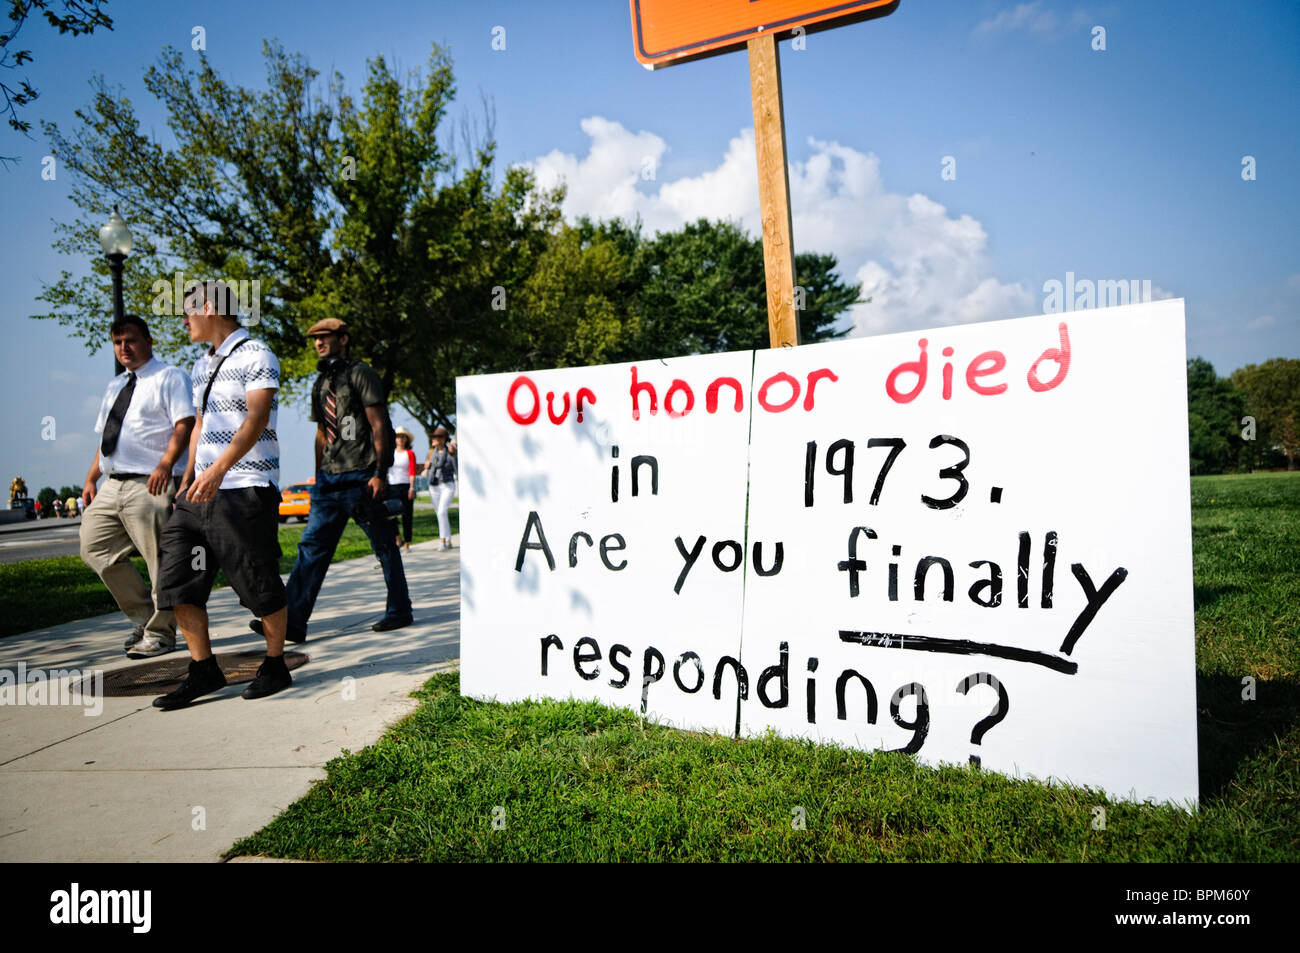 Anti-abortion protesters at the Tea Party Rally of 08/28/10. The 1973 reference is to the passage of the Supreme - Stock Image